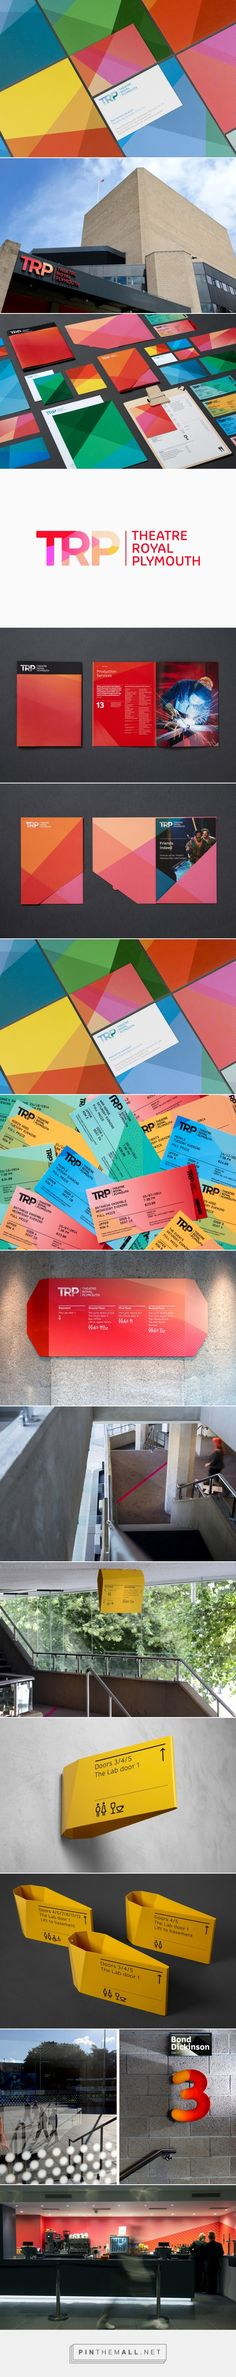 New Logo for Theatre Royal Plymouth by Spy — BP&O... - a grouped images picture - Pin Them All